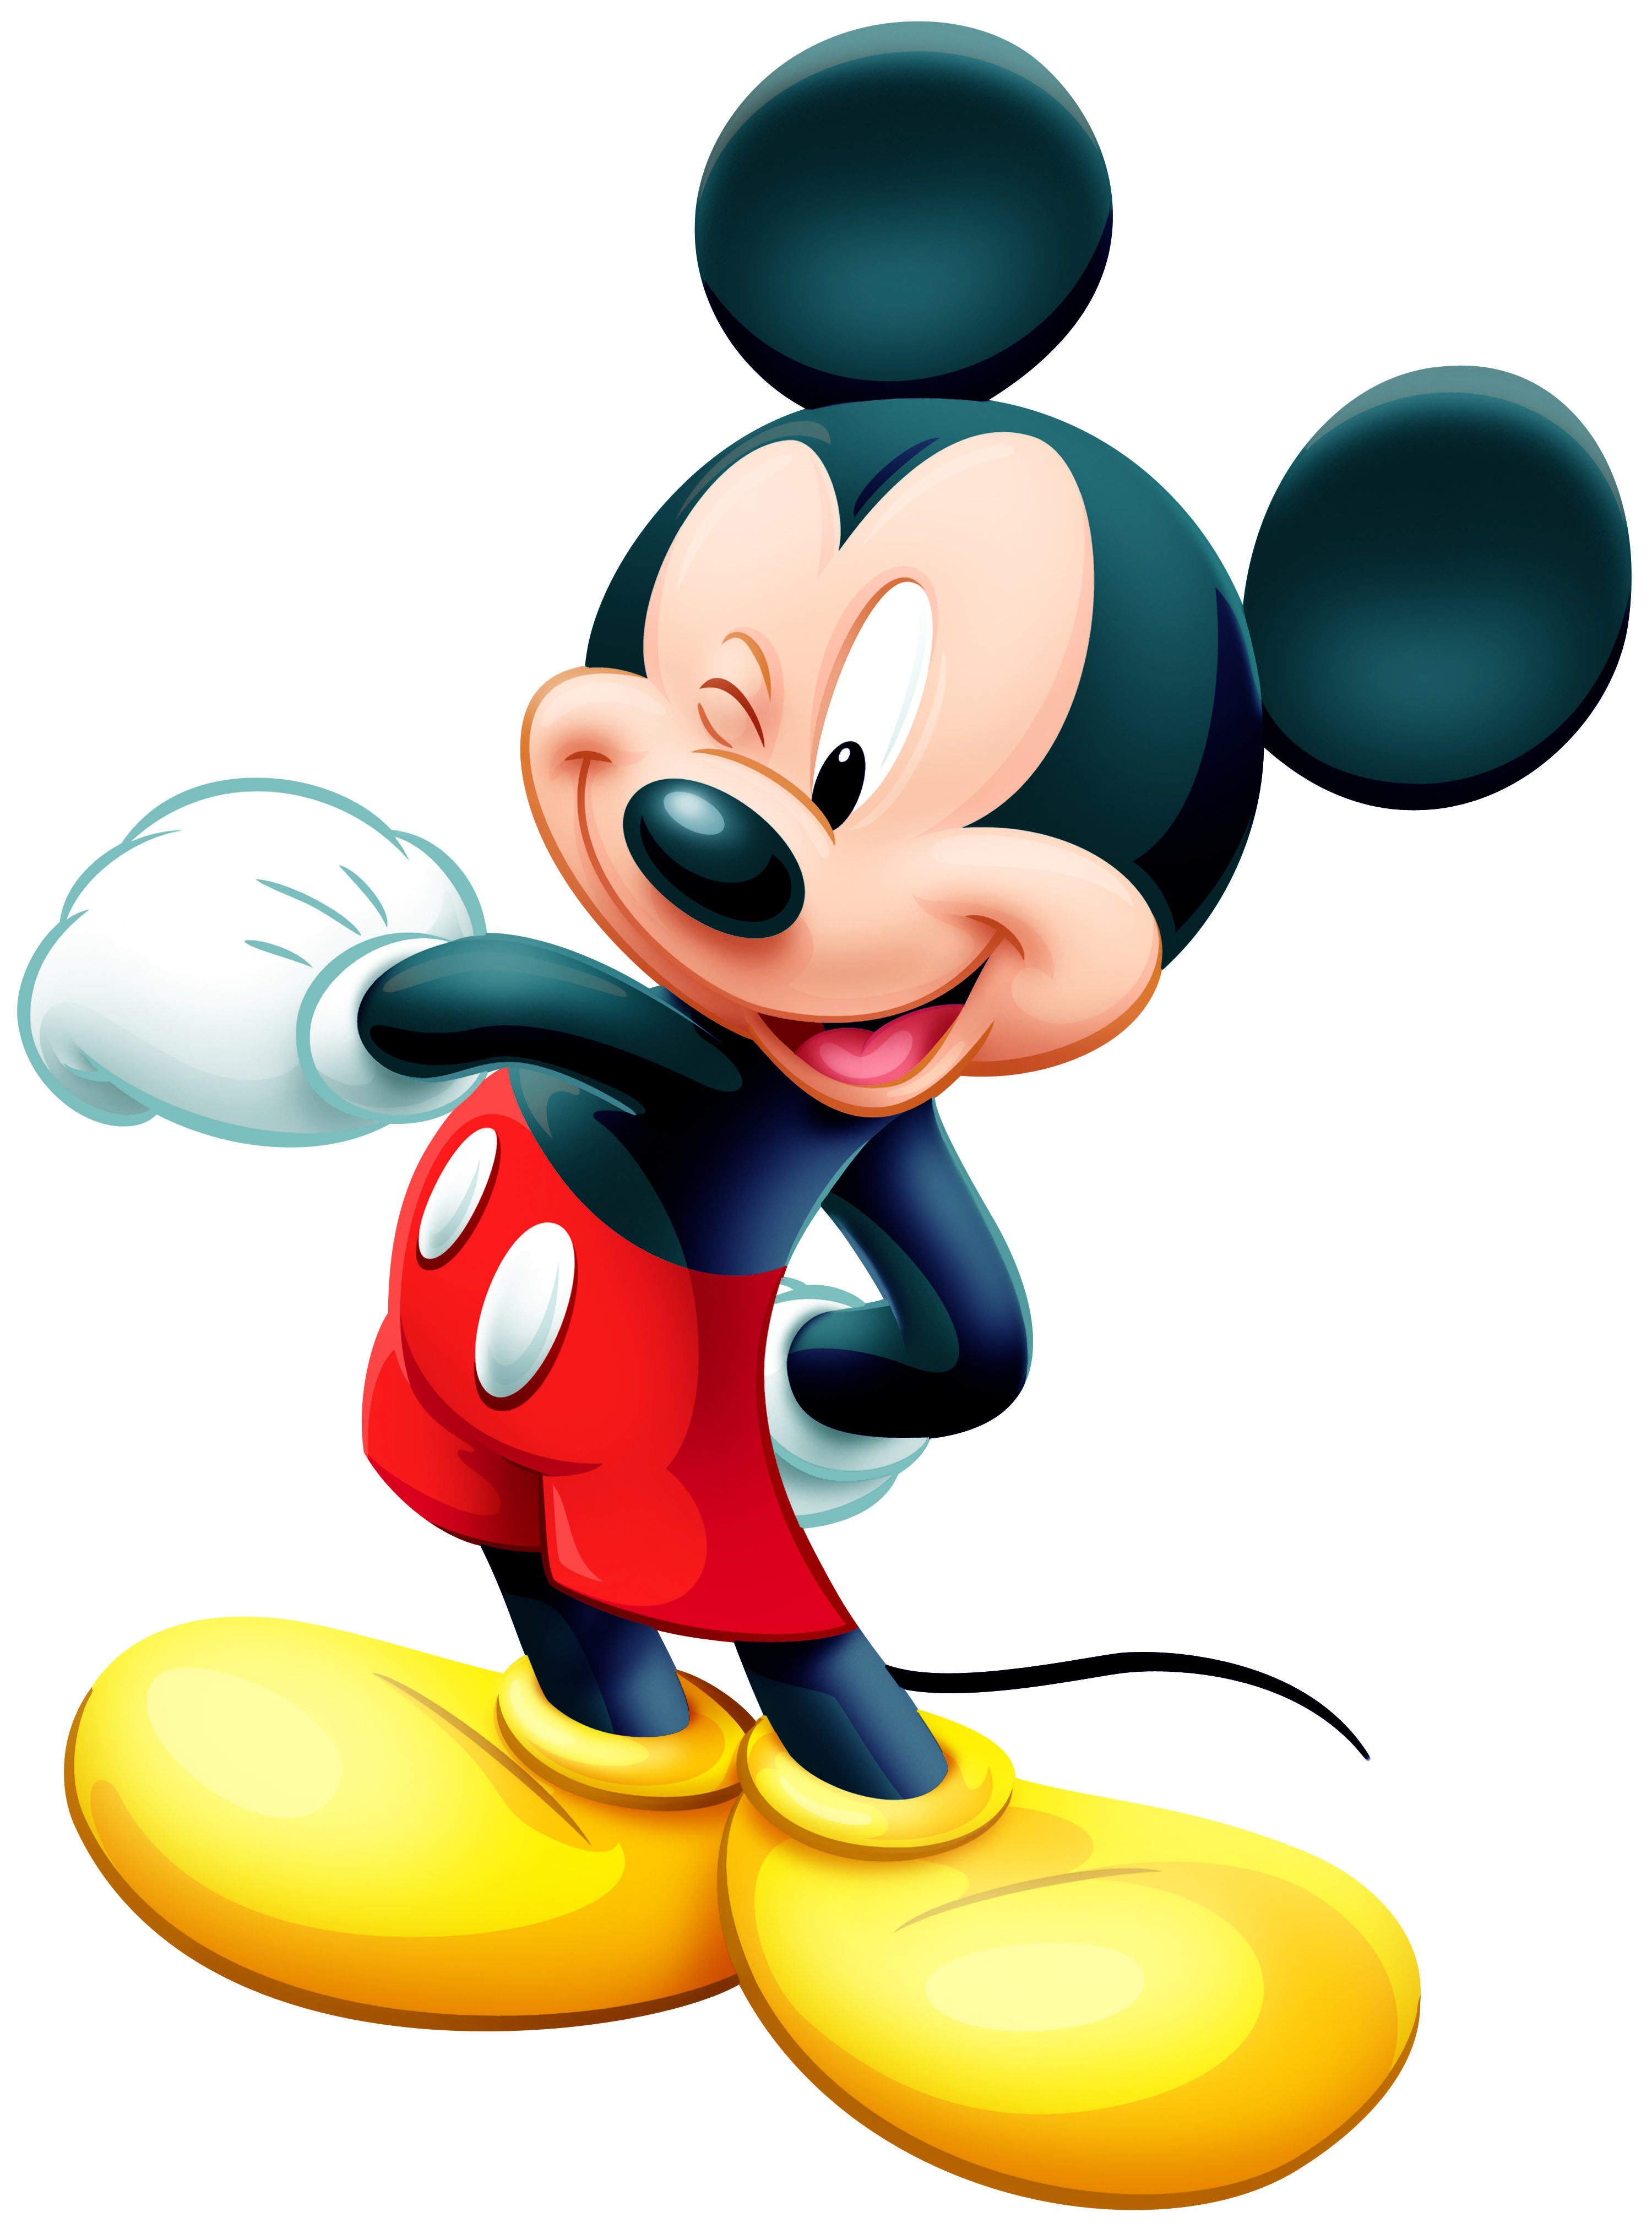 High Def Collection: 50 Full HD Mickey Mouse Wallpapers (In High